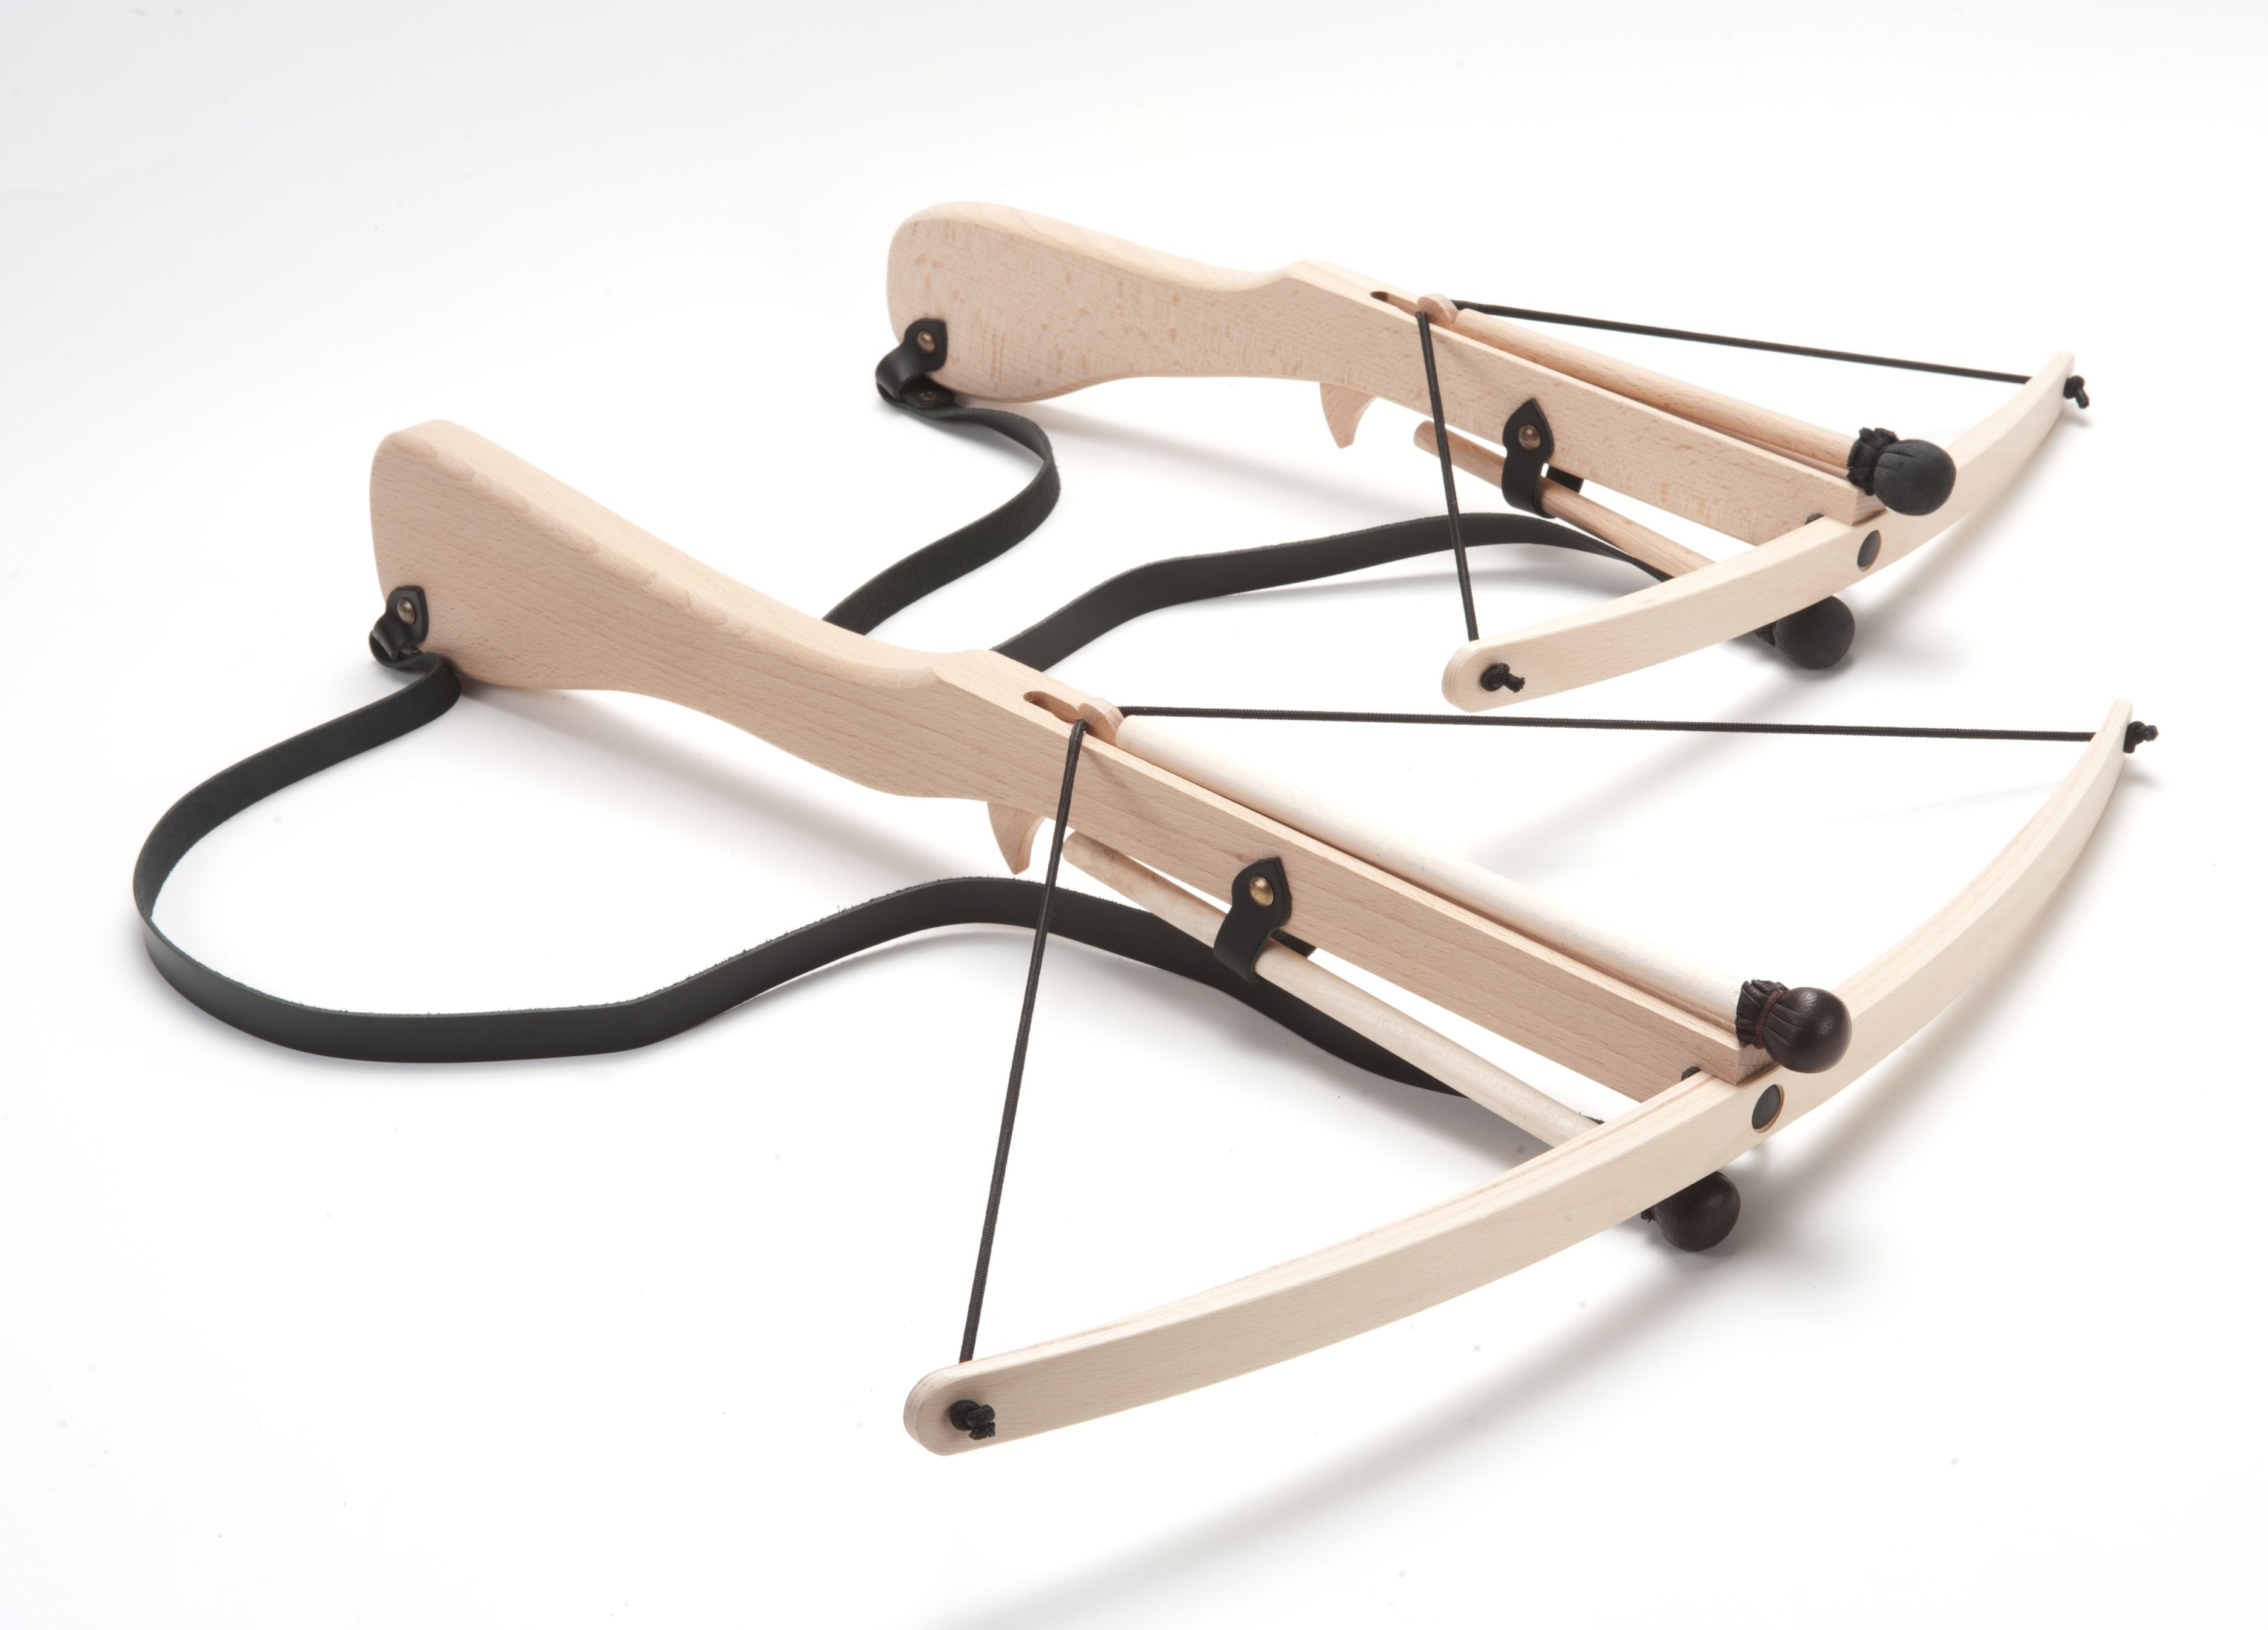 W 181 wooden crossbow small use with 3 741 2 688 pixels halloween pinterest - How to make a homemade bow and arrow out of wood ...